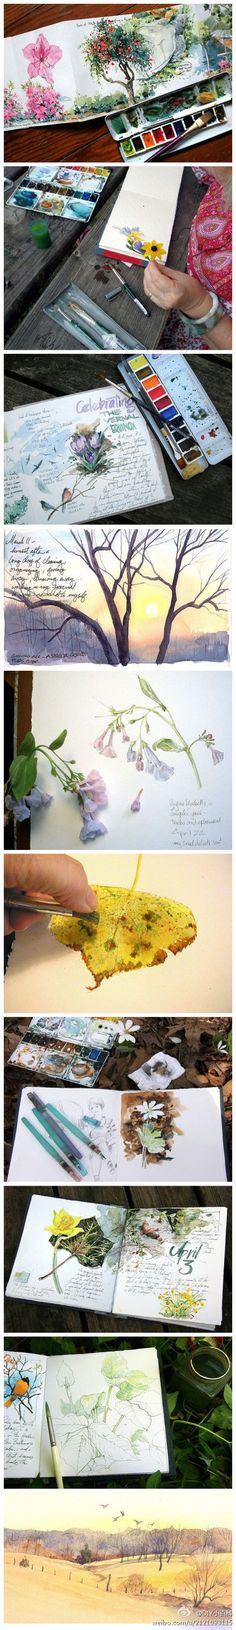 Step by Step of creating a watercolor journal- so cool.